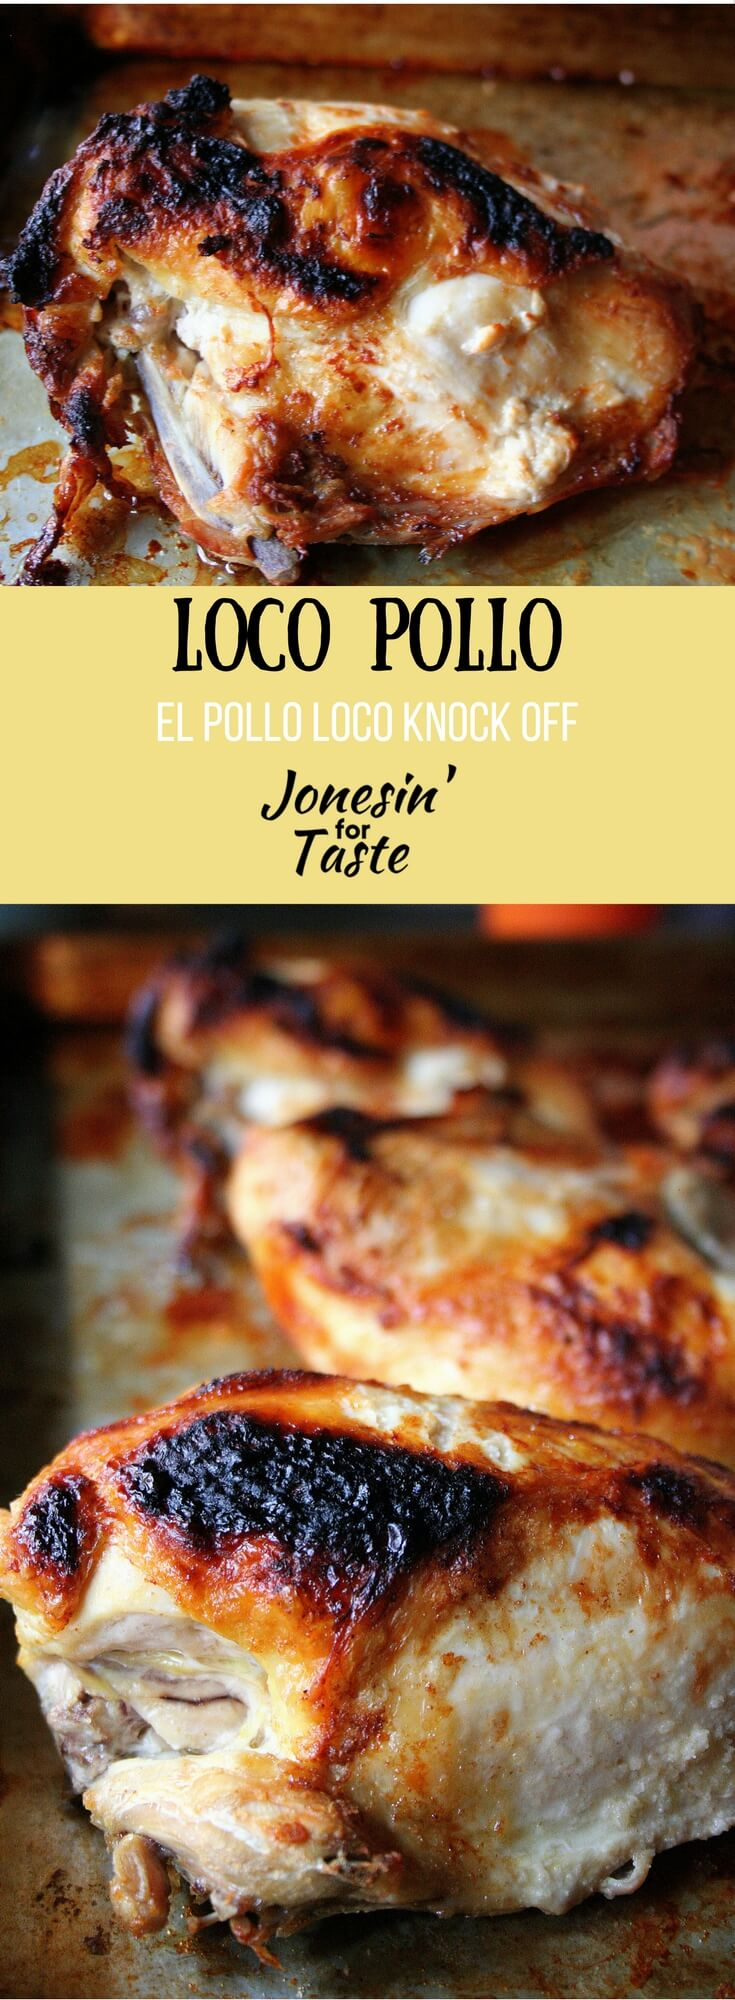 Whip up a simple marinade and grill or broil this Loco Pollo chicken for a juicy El Pollo Loco knock off that pairs well with rice and beans.